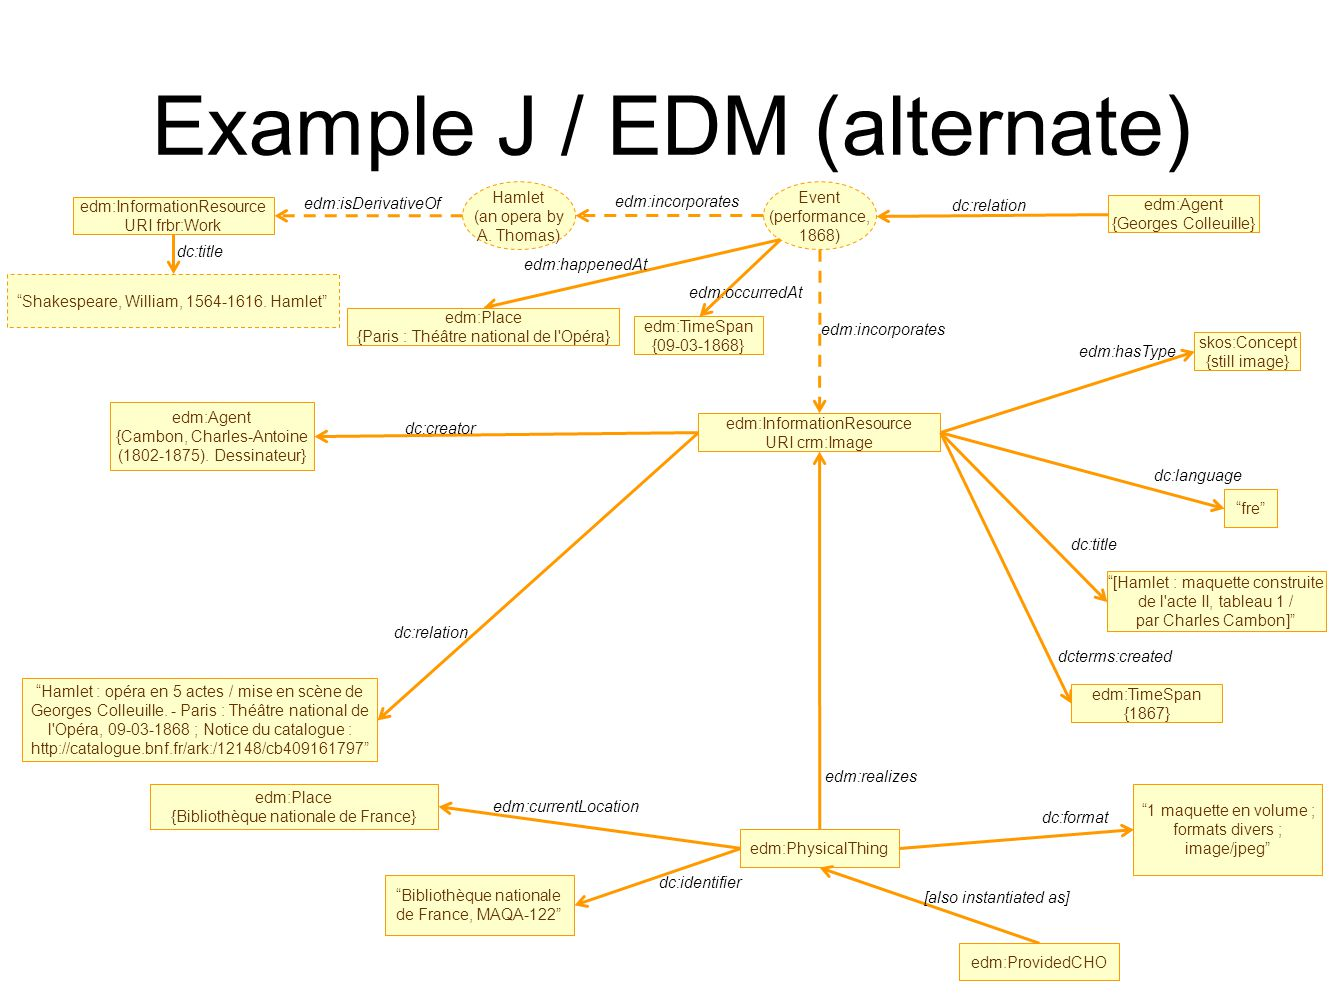 Example J / EDM (alternate) edm:InformationResource URI crm:Image fre dc:language edm:Agent {Cambon, Charles-Antoine (1802-1875).